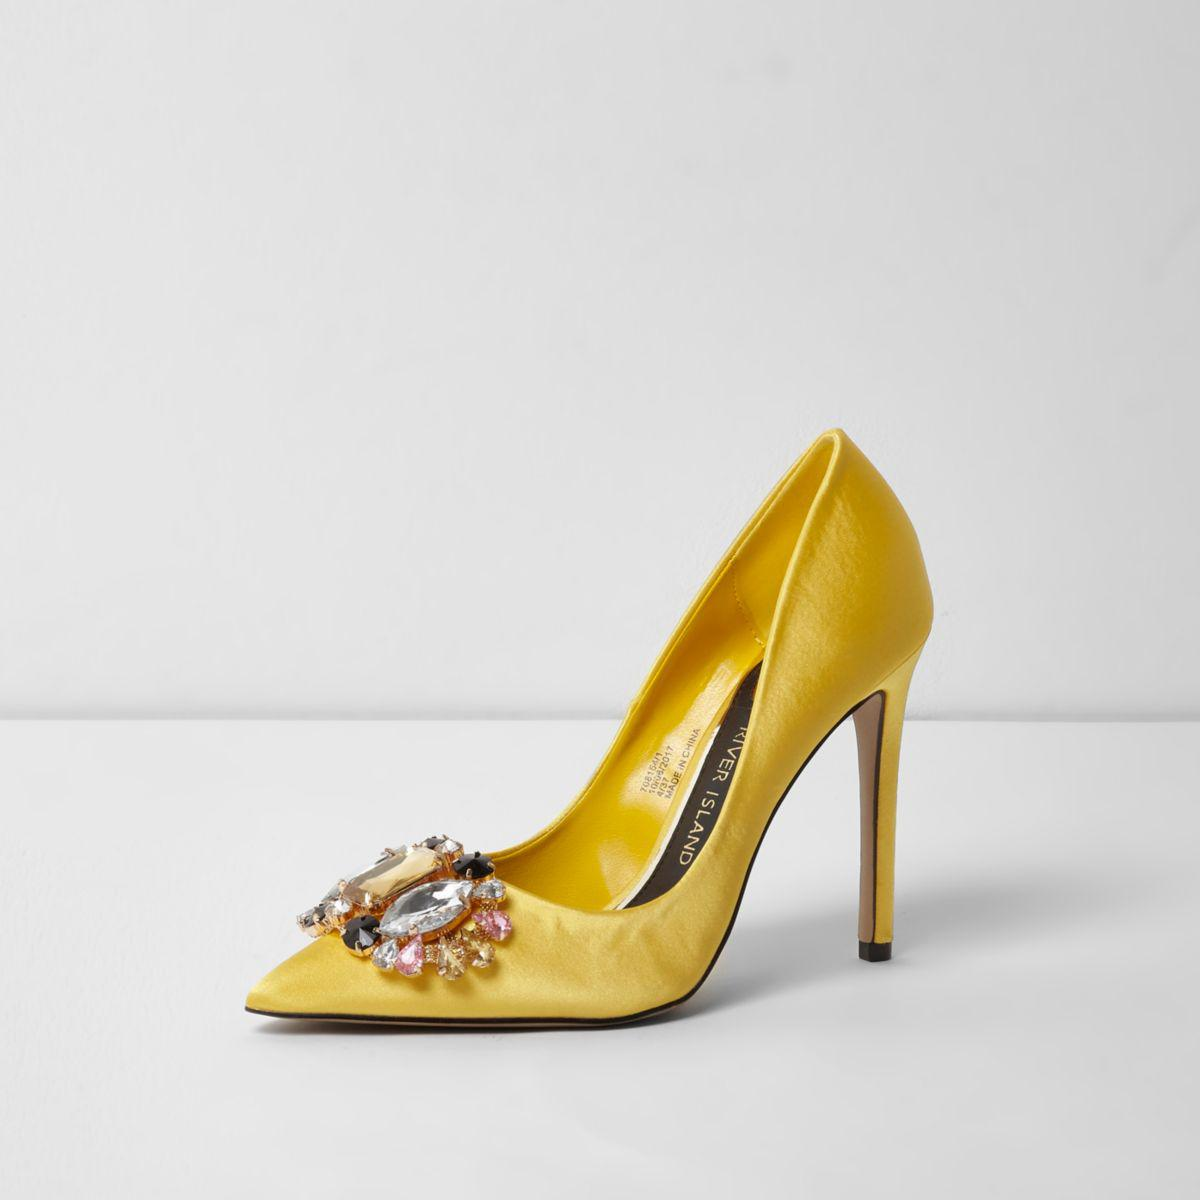 River Island Heeled mules - yellow